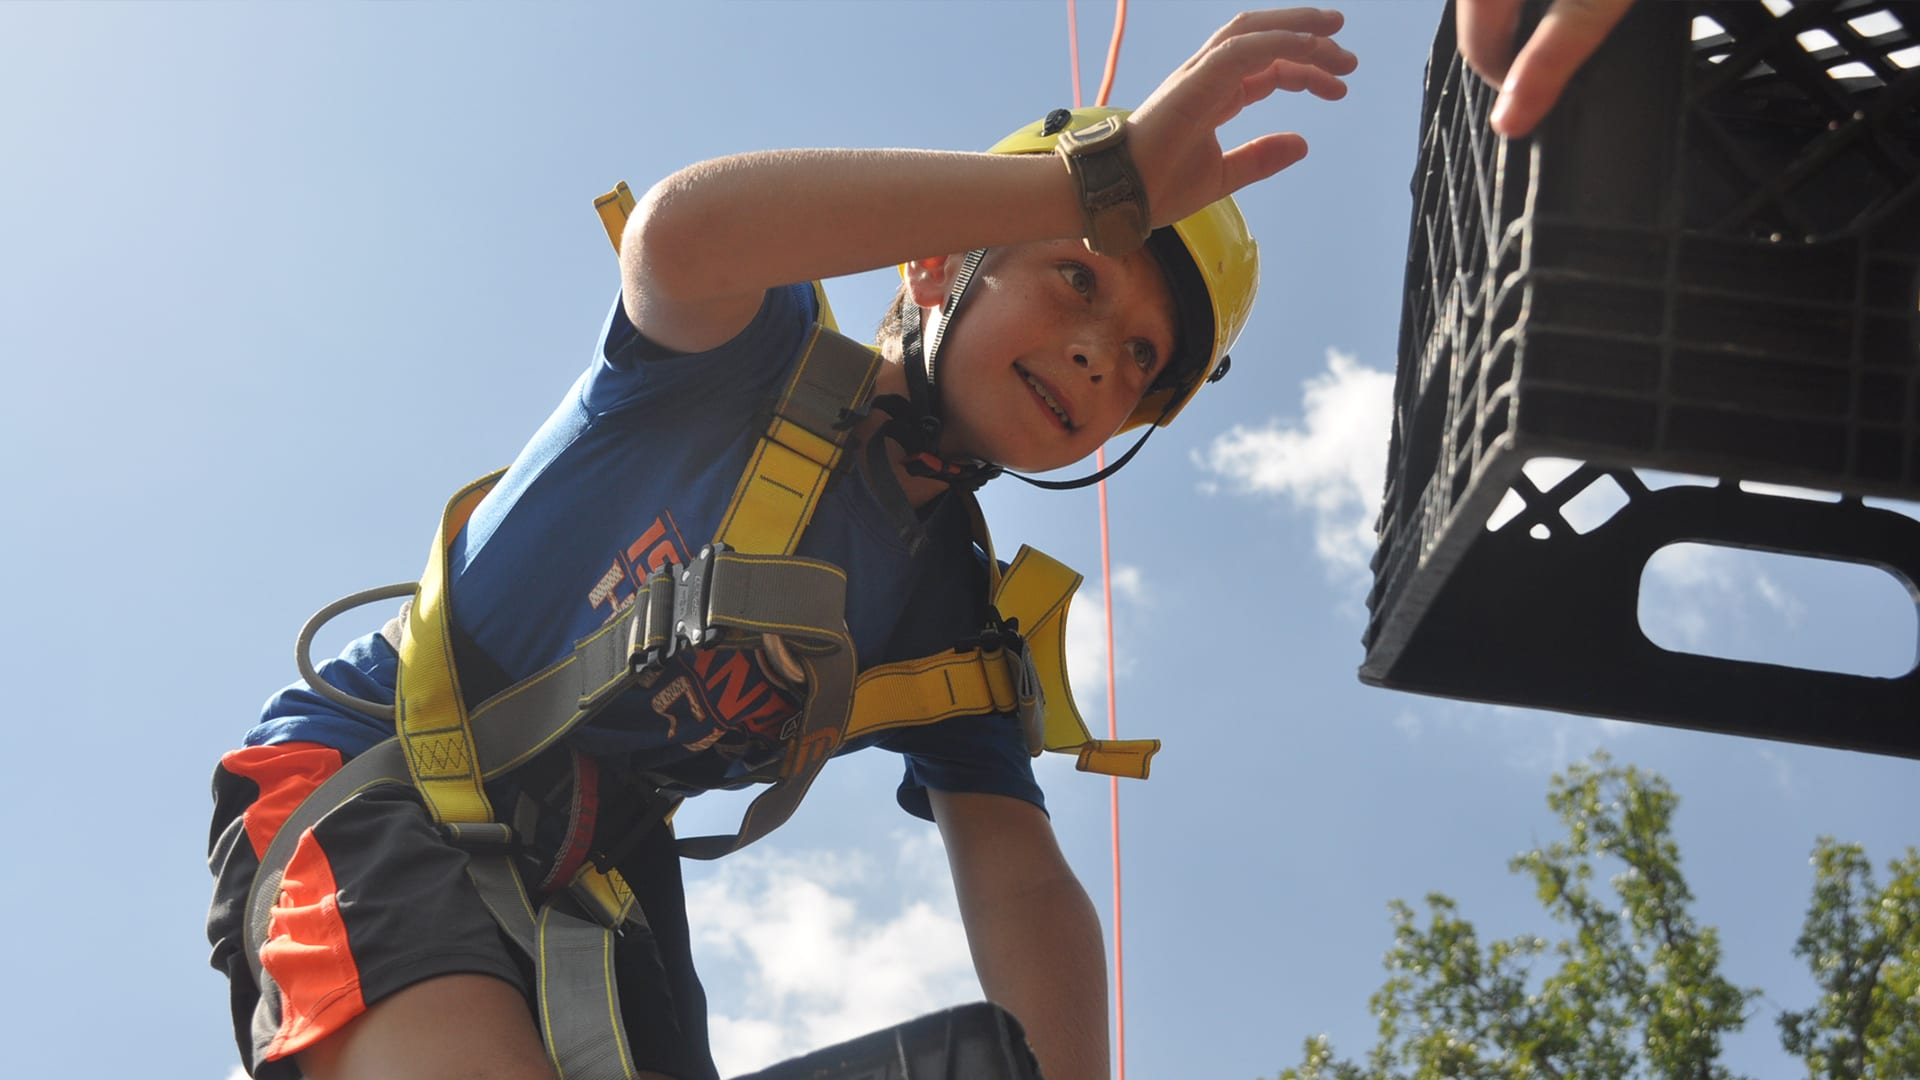 Home Page Image Carousel - Adventure Camp - Camper Crate stacking on the ropes course - Cub Creek Science and Animal Camp